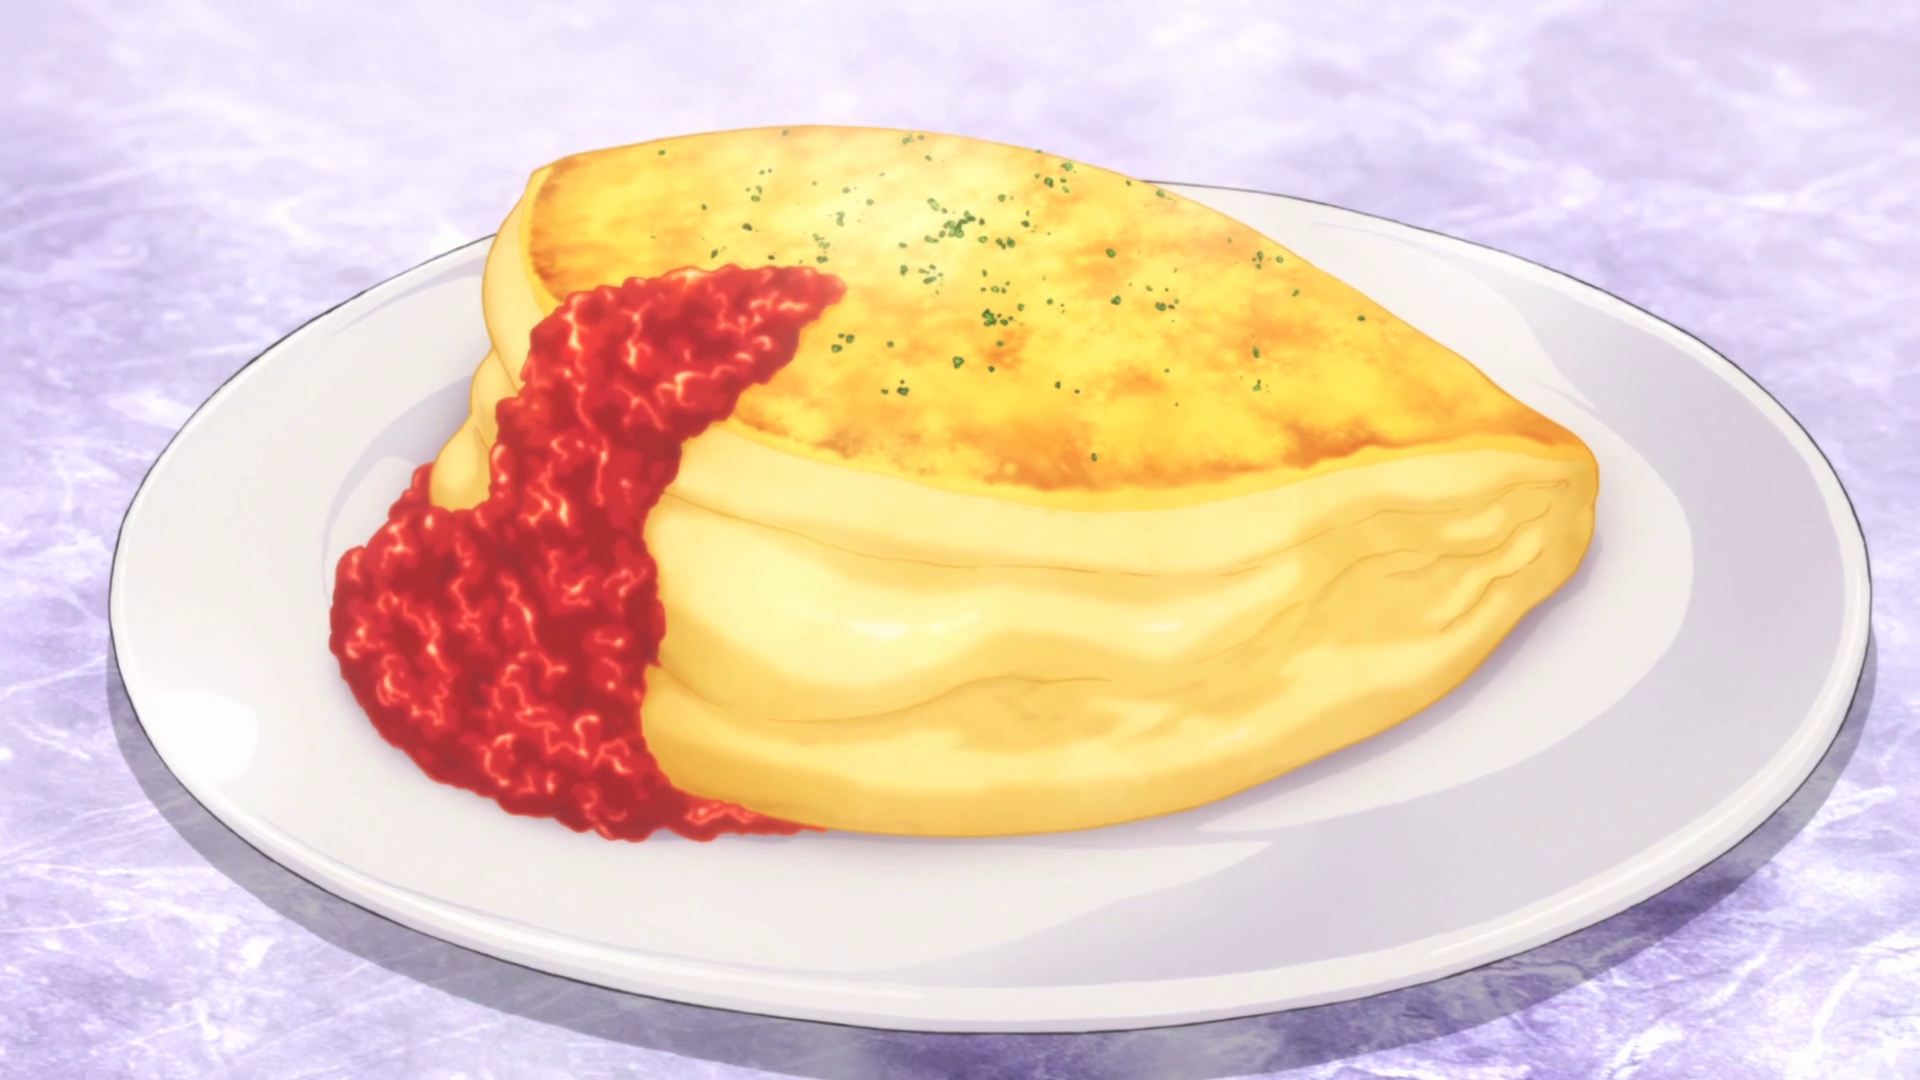 Mini souffl omelette shokugeki no soma wiki fandom powered by wikia animeanime mangamanga forumfinder Image collections